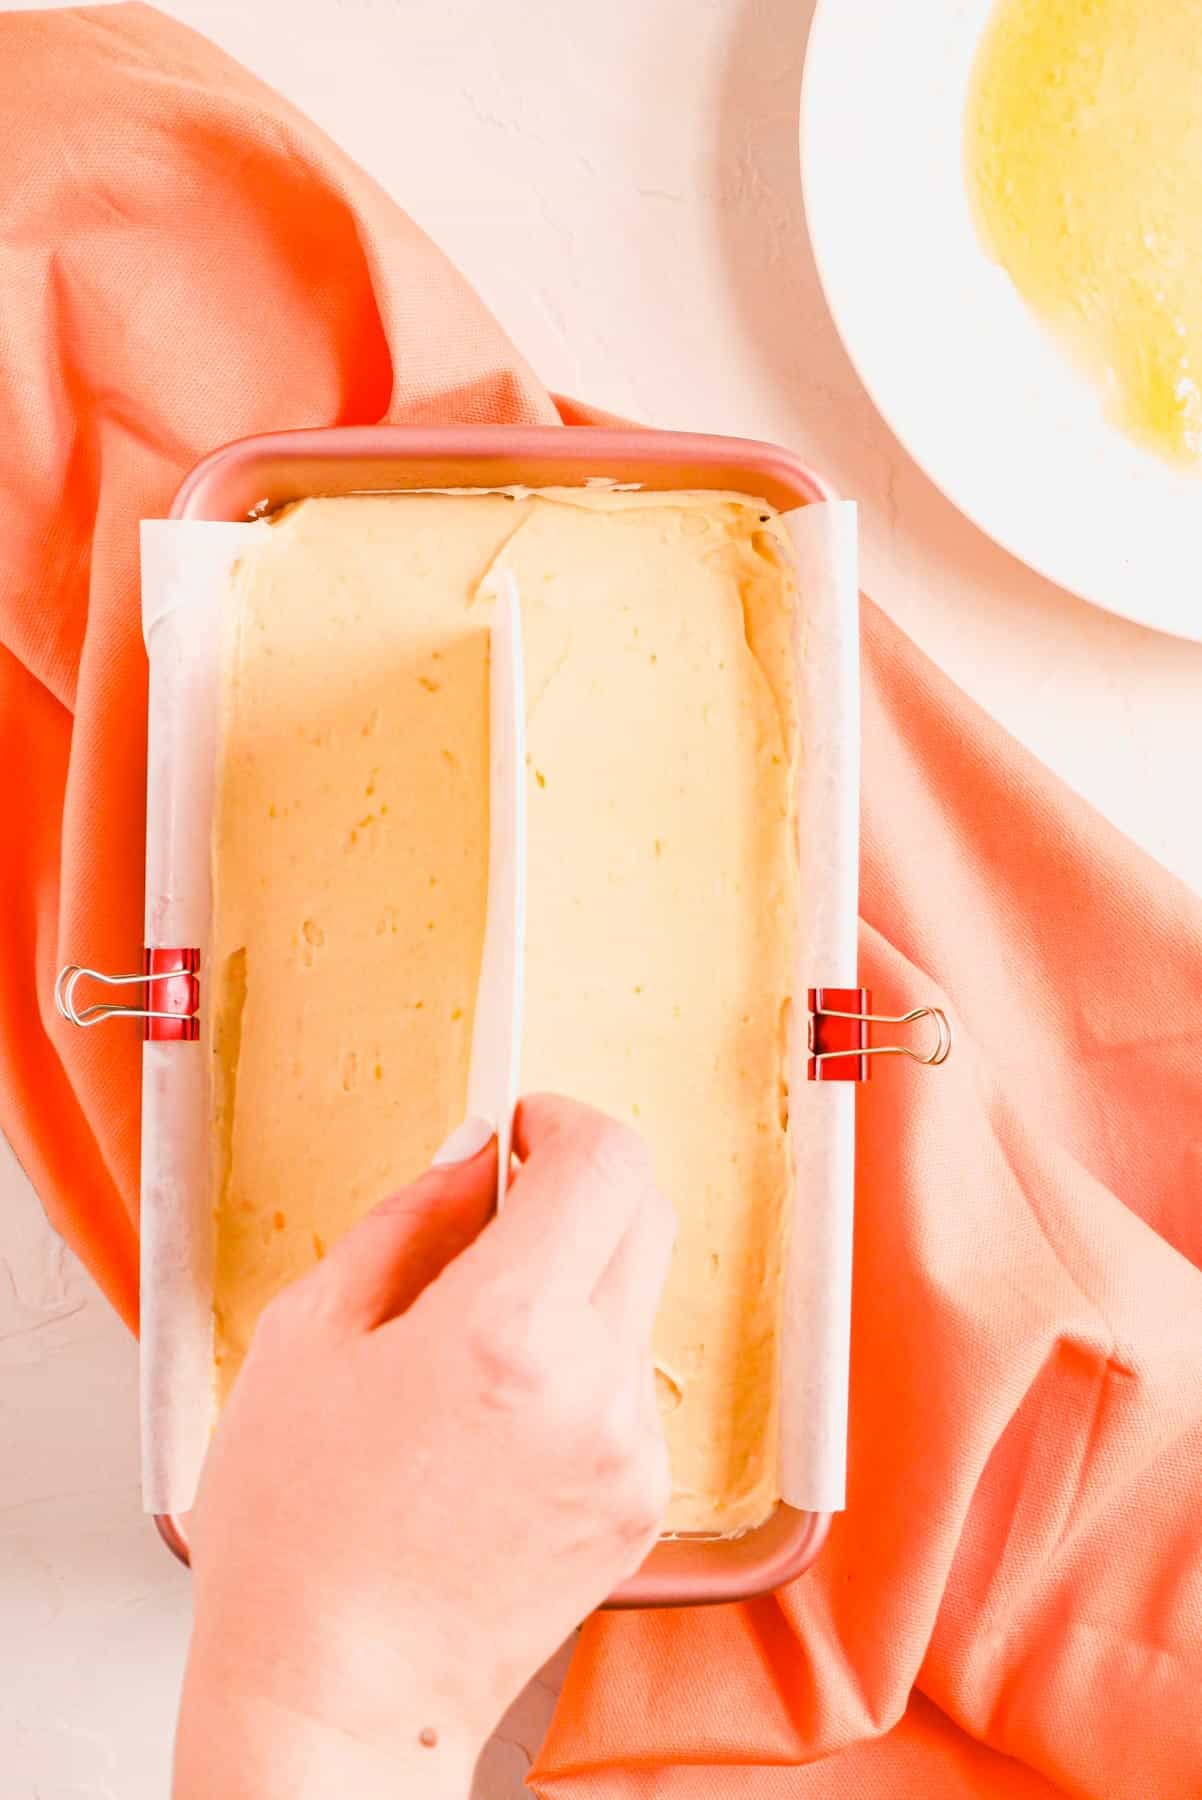 a hand using a bench knife to make a butter line in the middle of the pan of pound cake batter